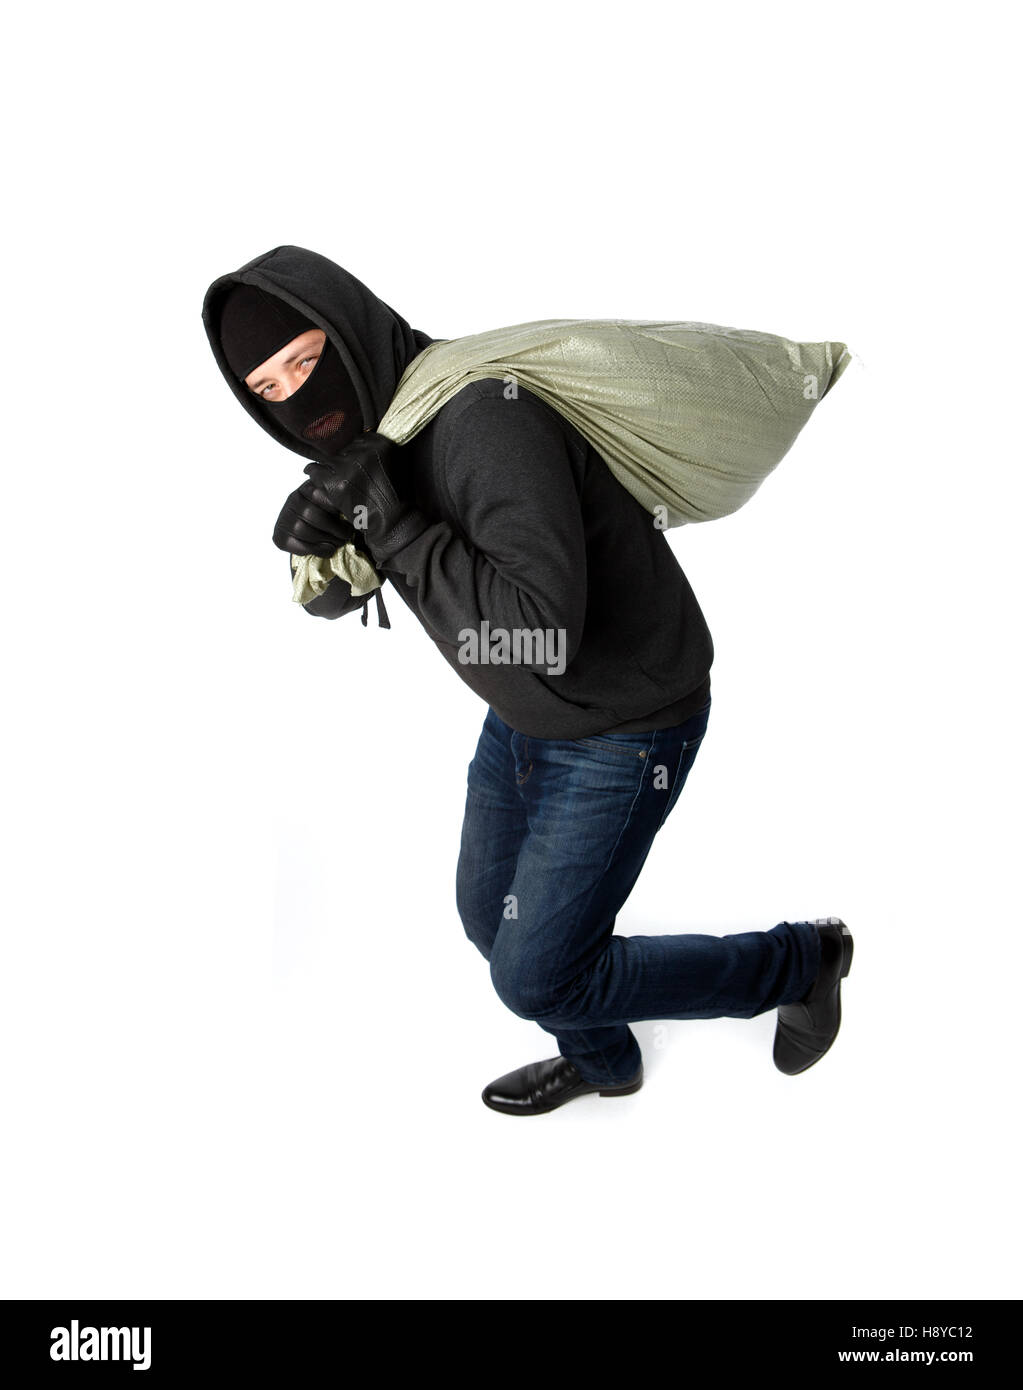 Thief running away with bag Stock Photo